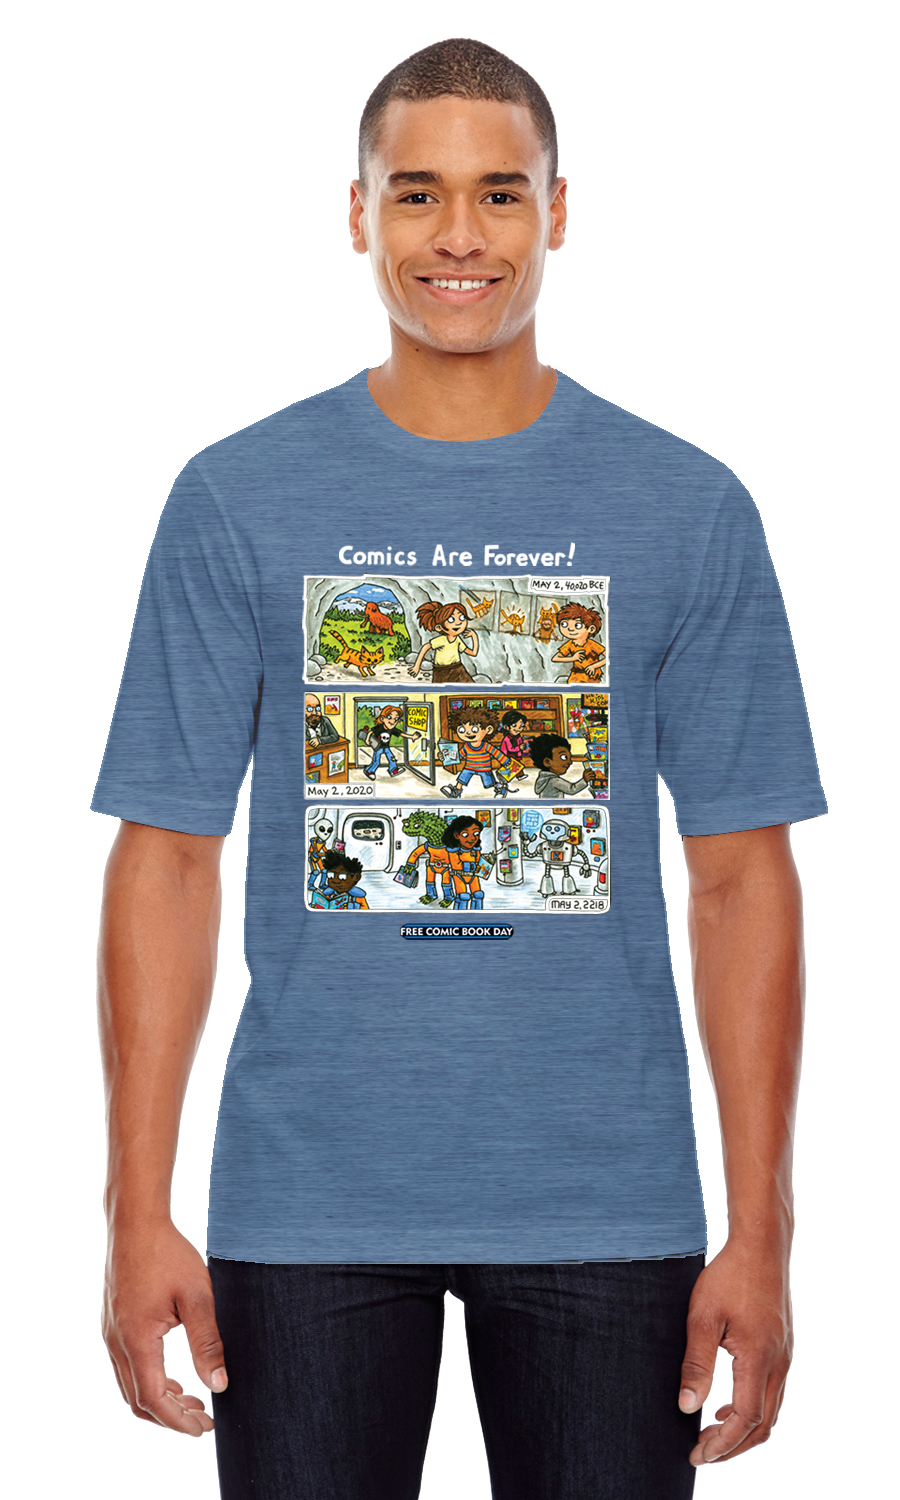 FCBD 2020 COMM ARTIST BROWN HTHR DENIM T/S XXL